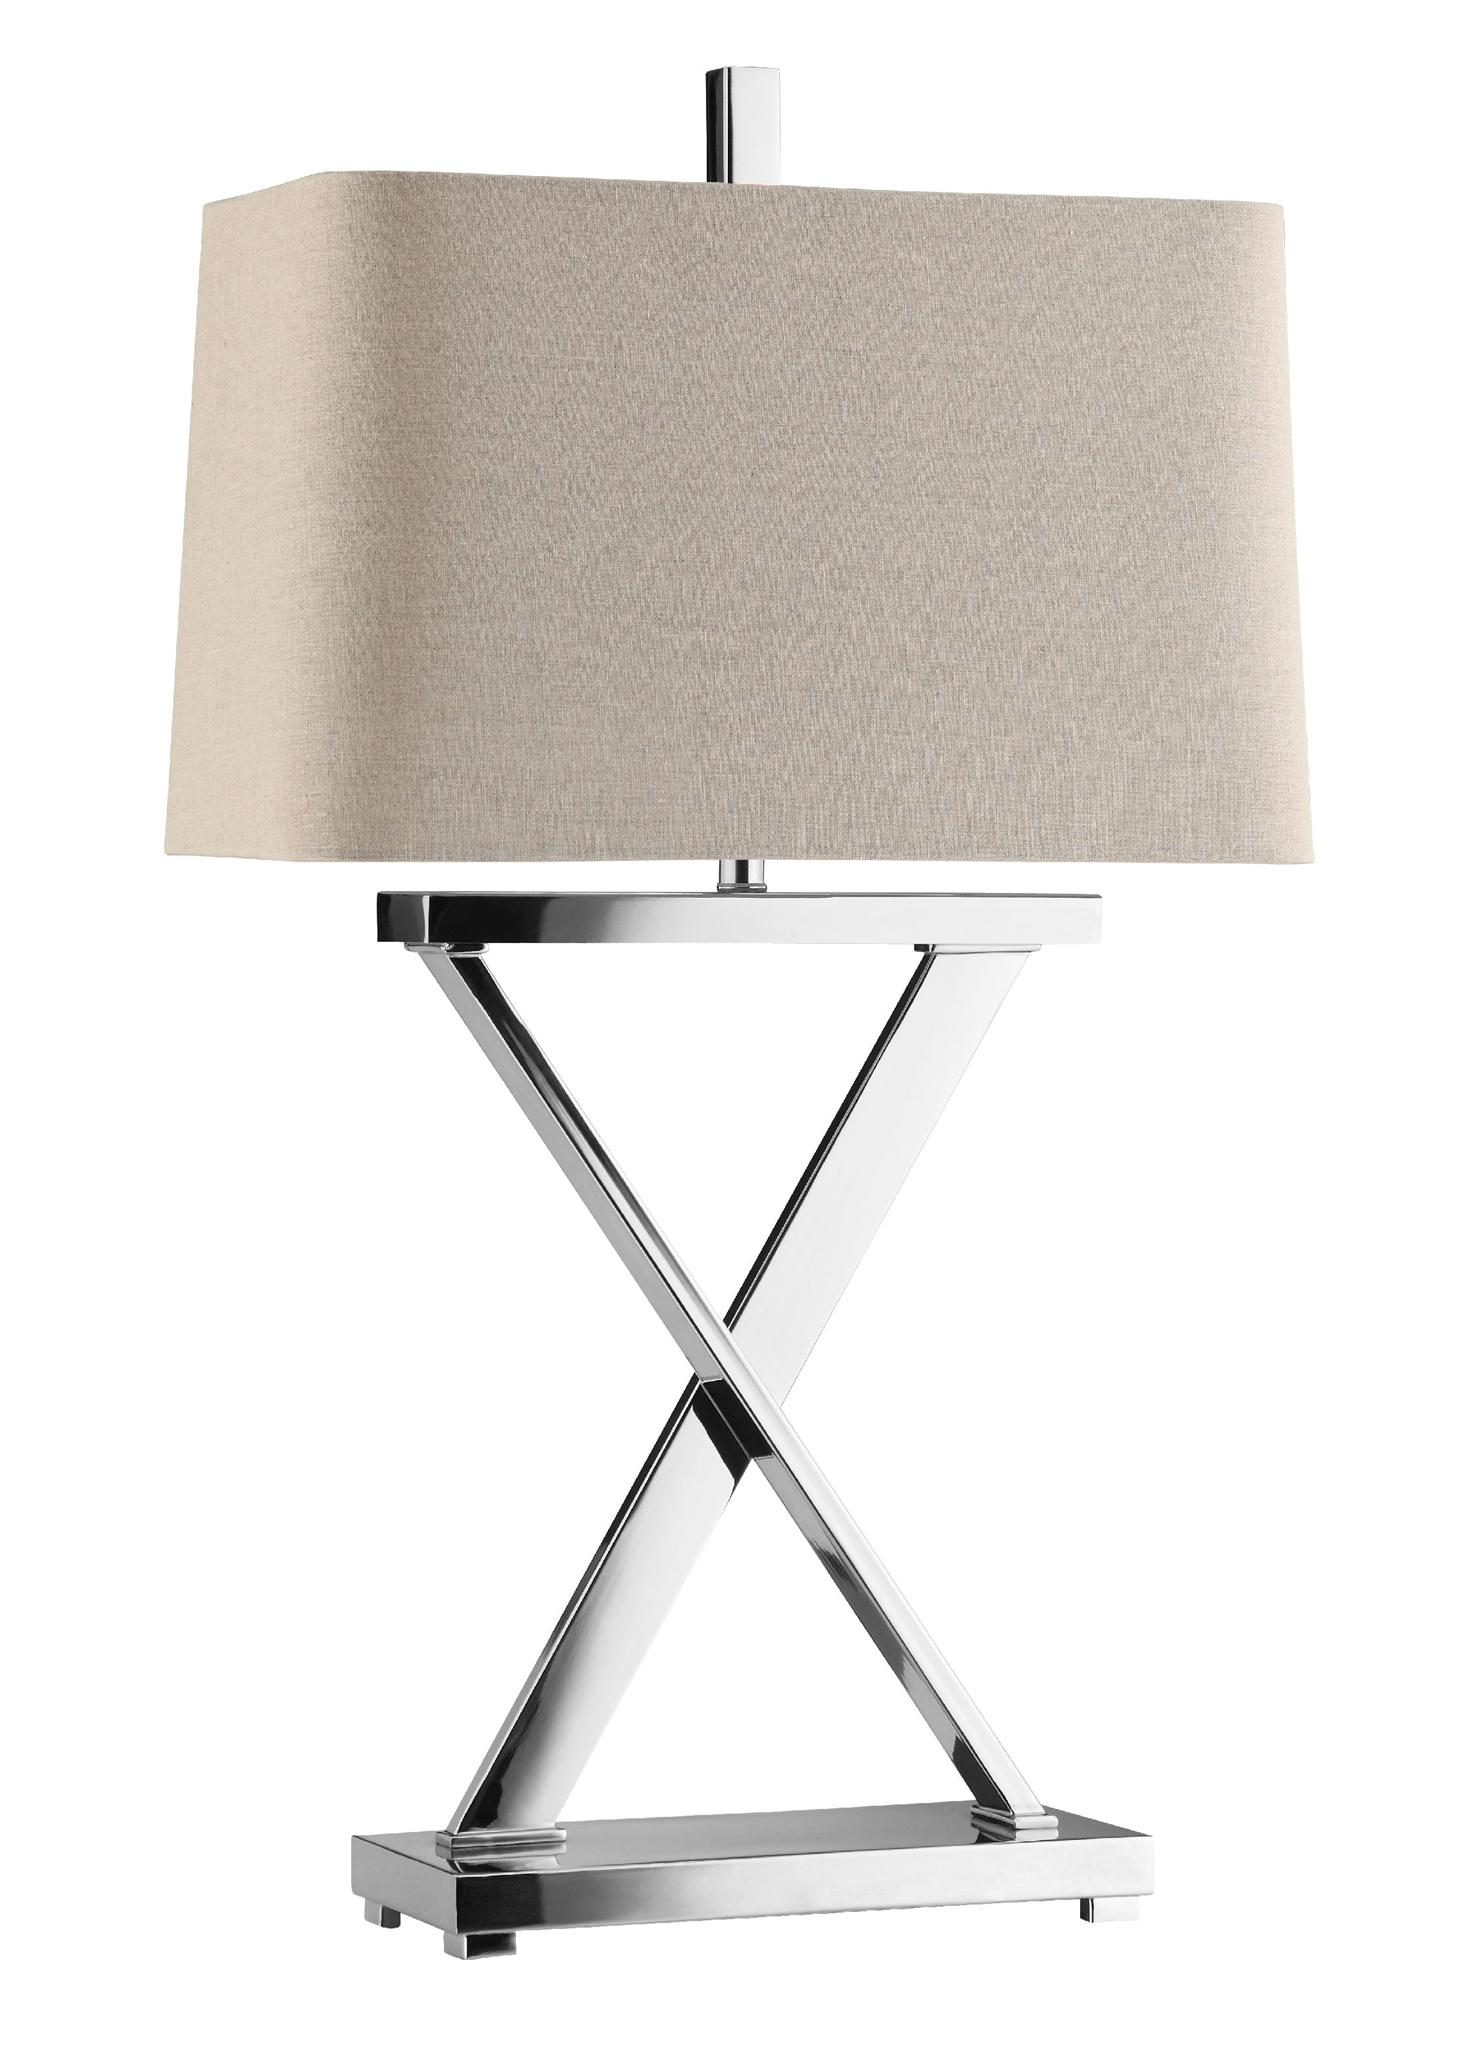 stein world - max table lamp